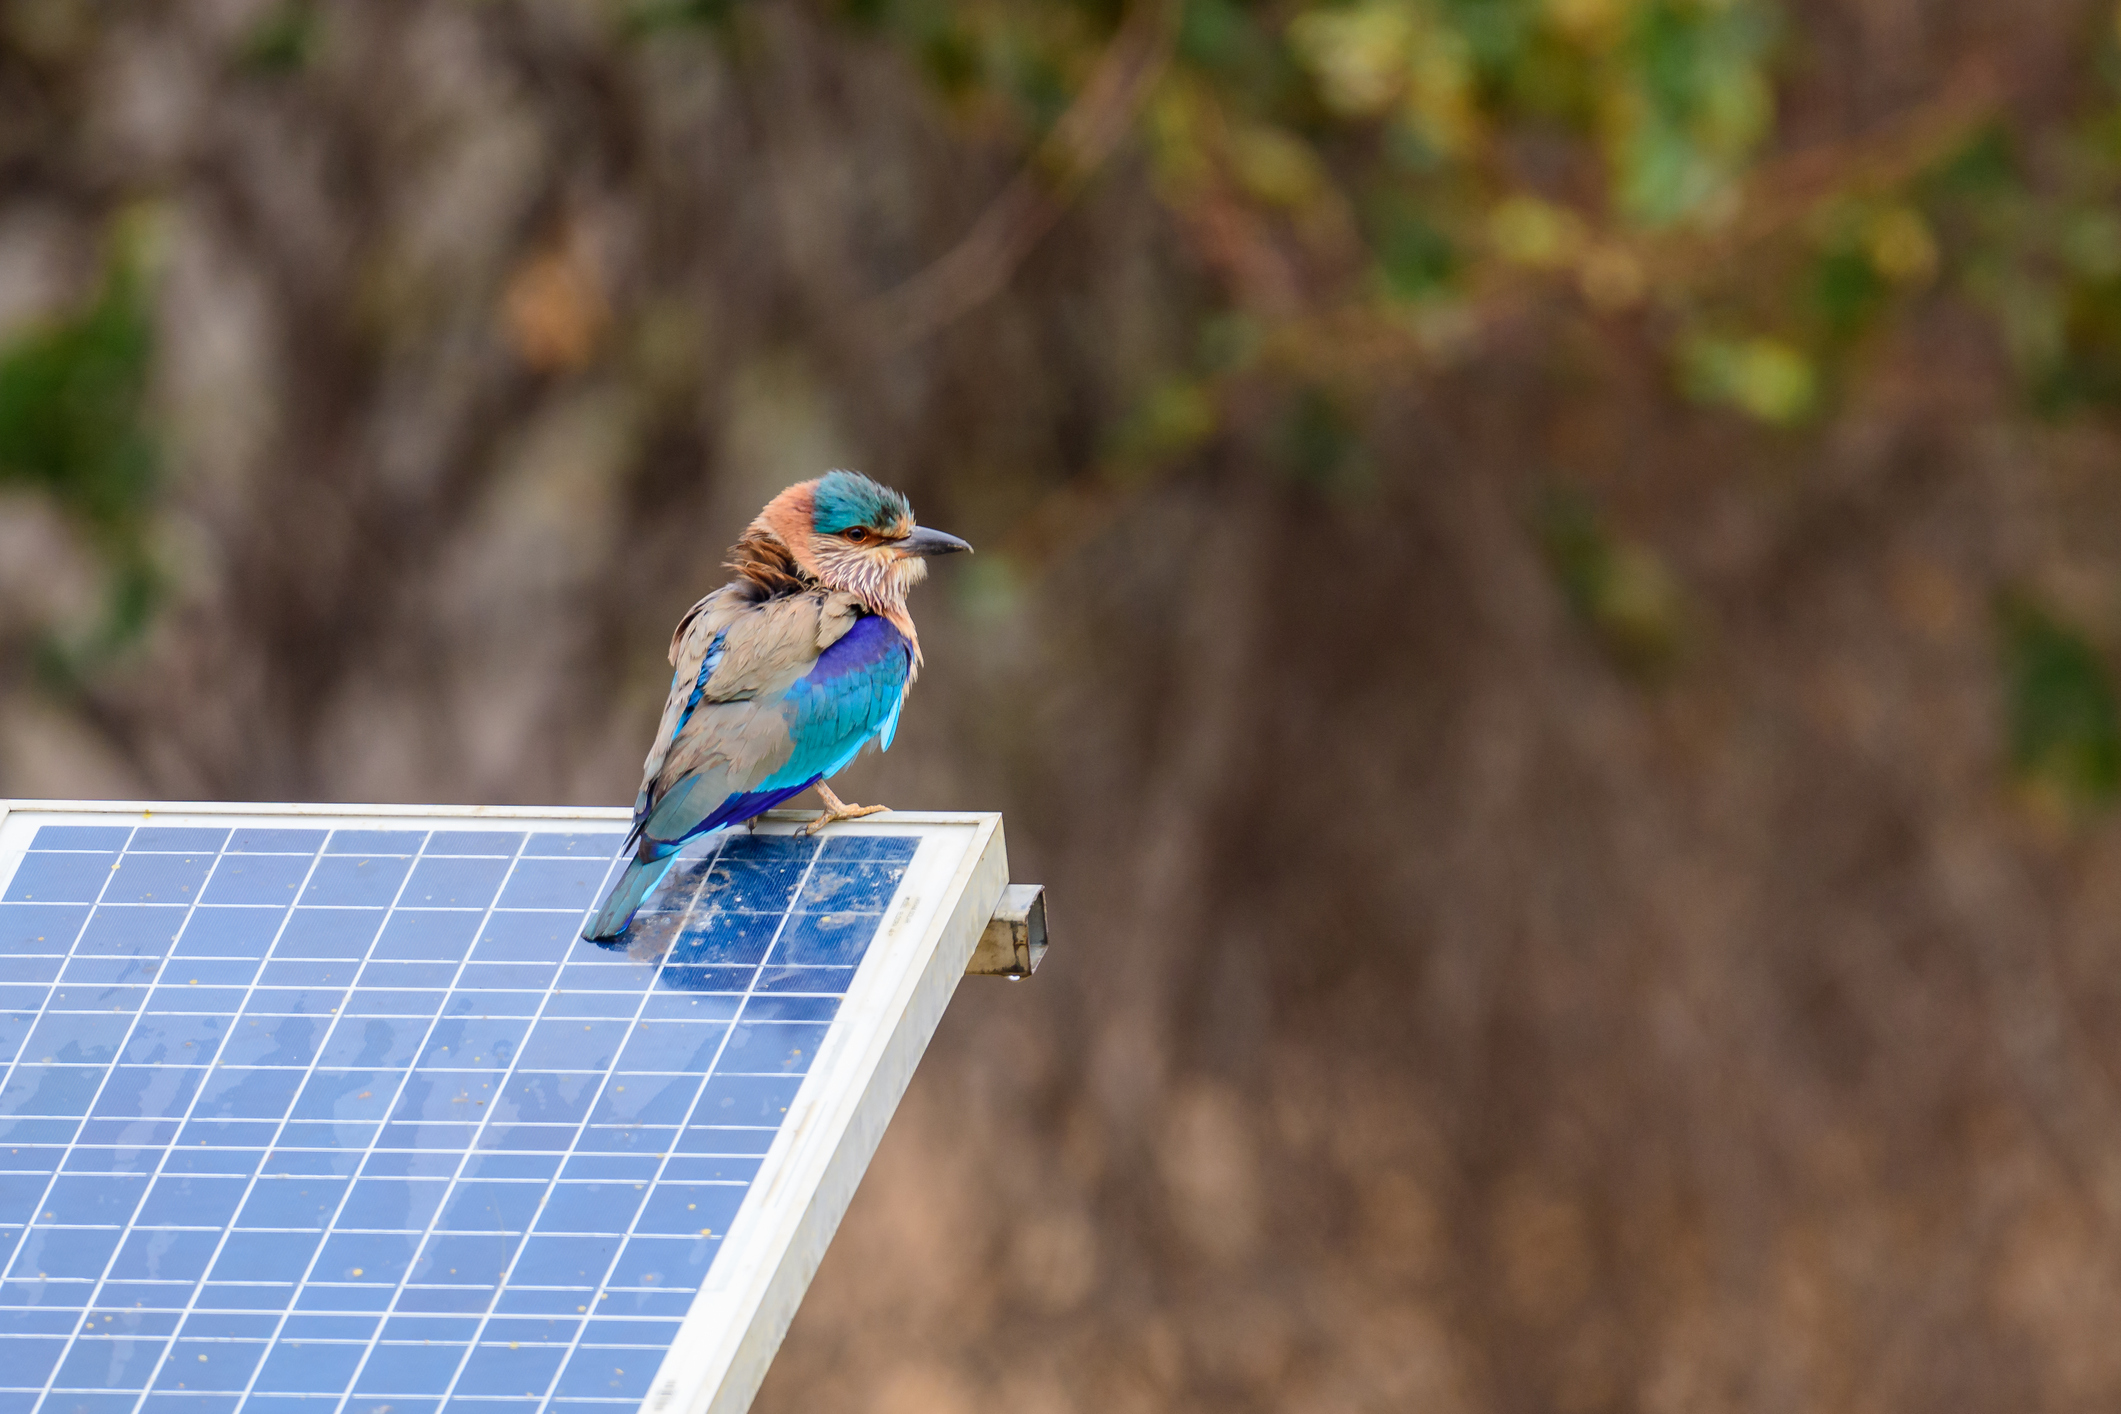 A Bird sitting on top of a solar panel.